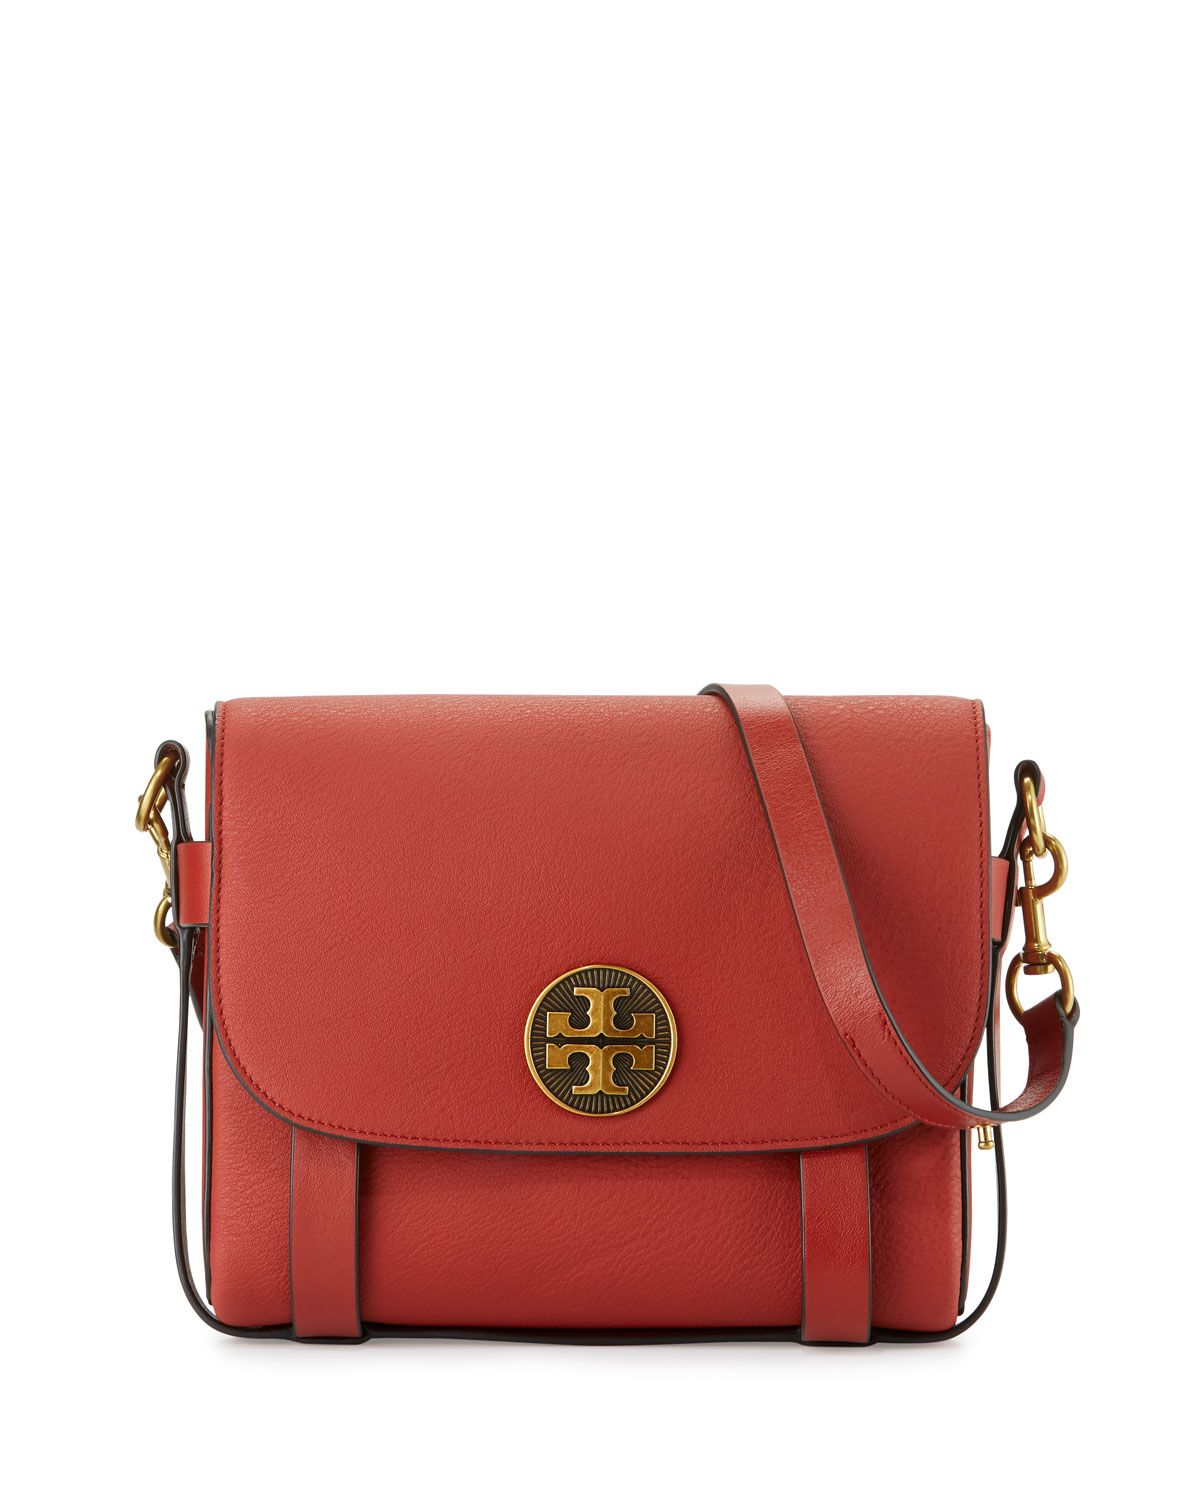 f6d36fa4a85 Tory Burch Alastair Leather Messenger Bag